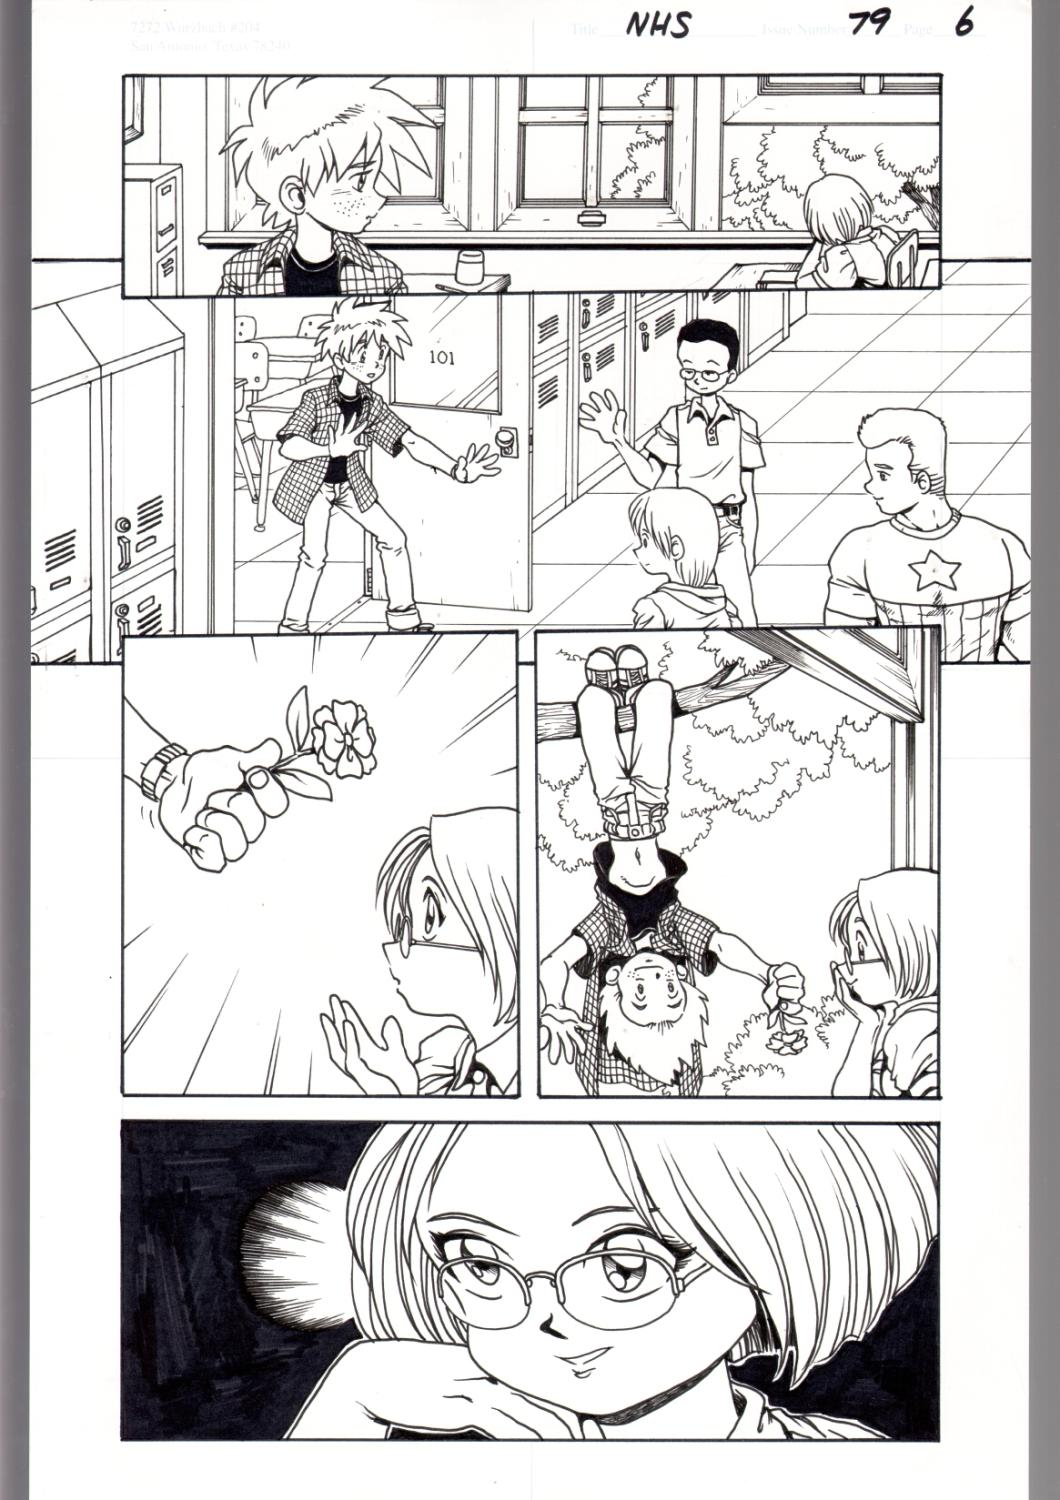 Ninja High School 79 Pg 6 Original Art Ben Dunn Anime